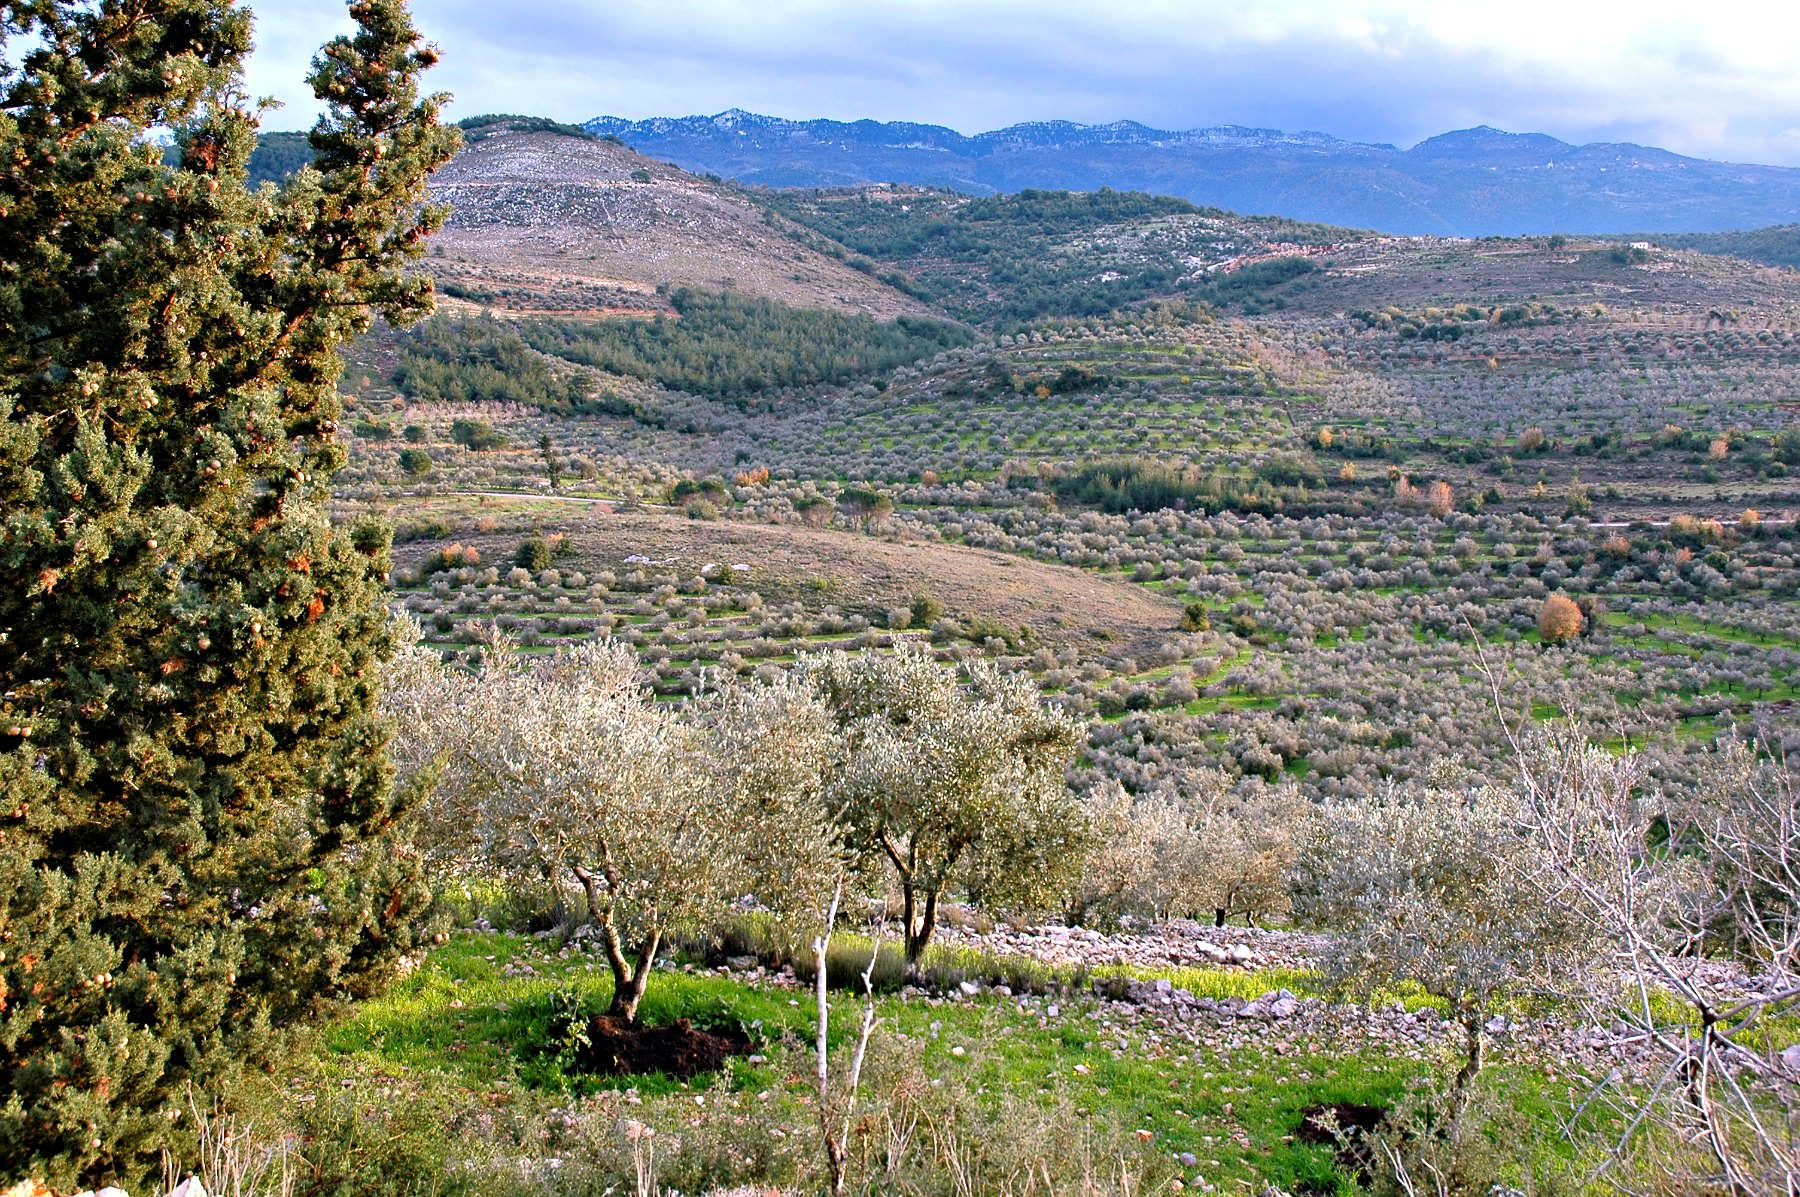 lebanese-olive-oil-exploring-intricacies-of-a-sector-with-potential